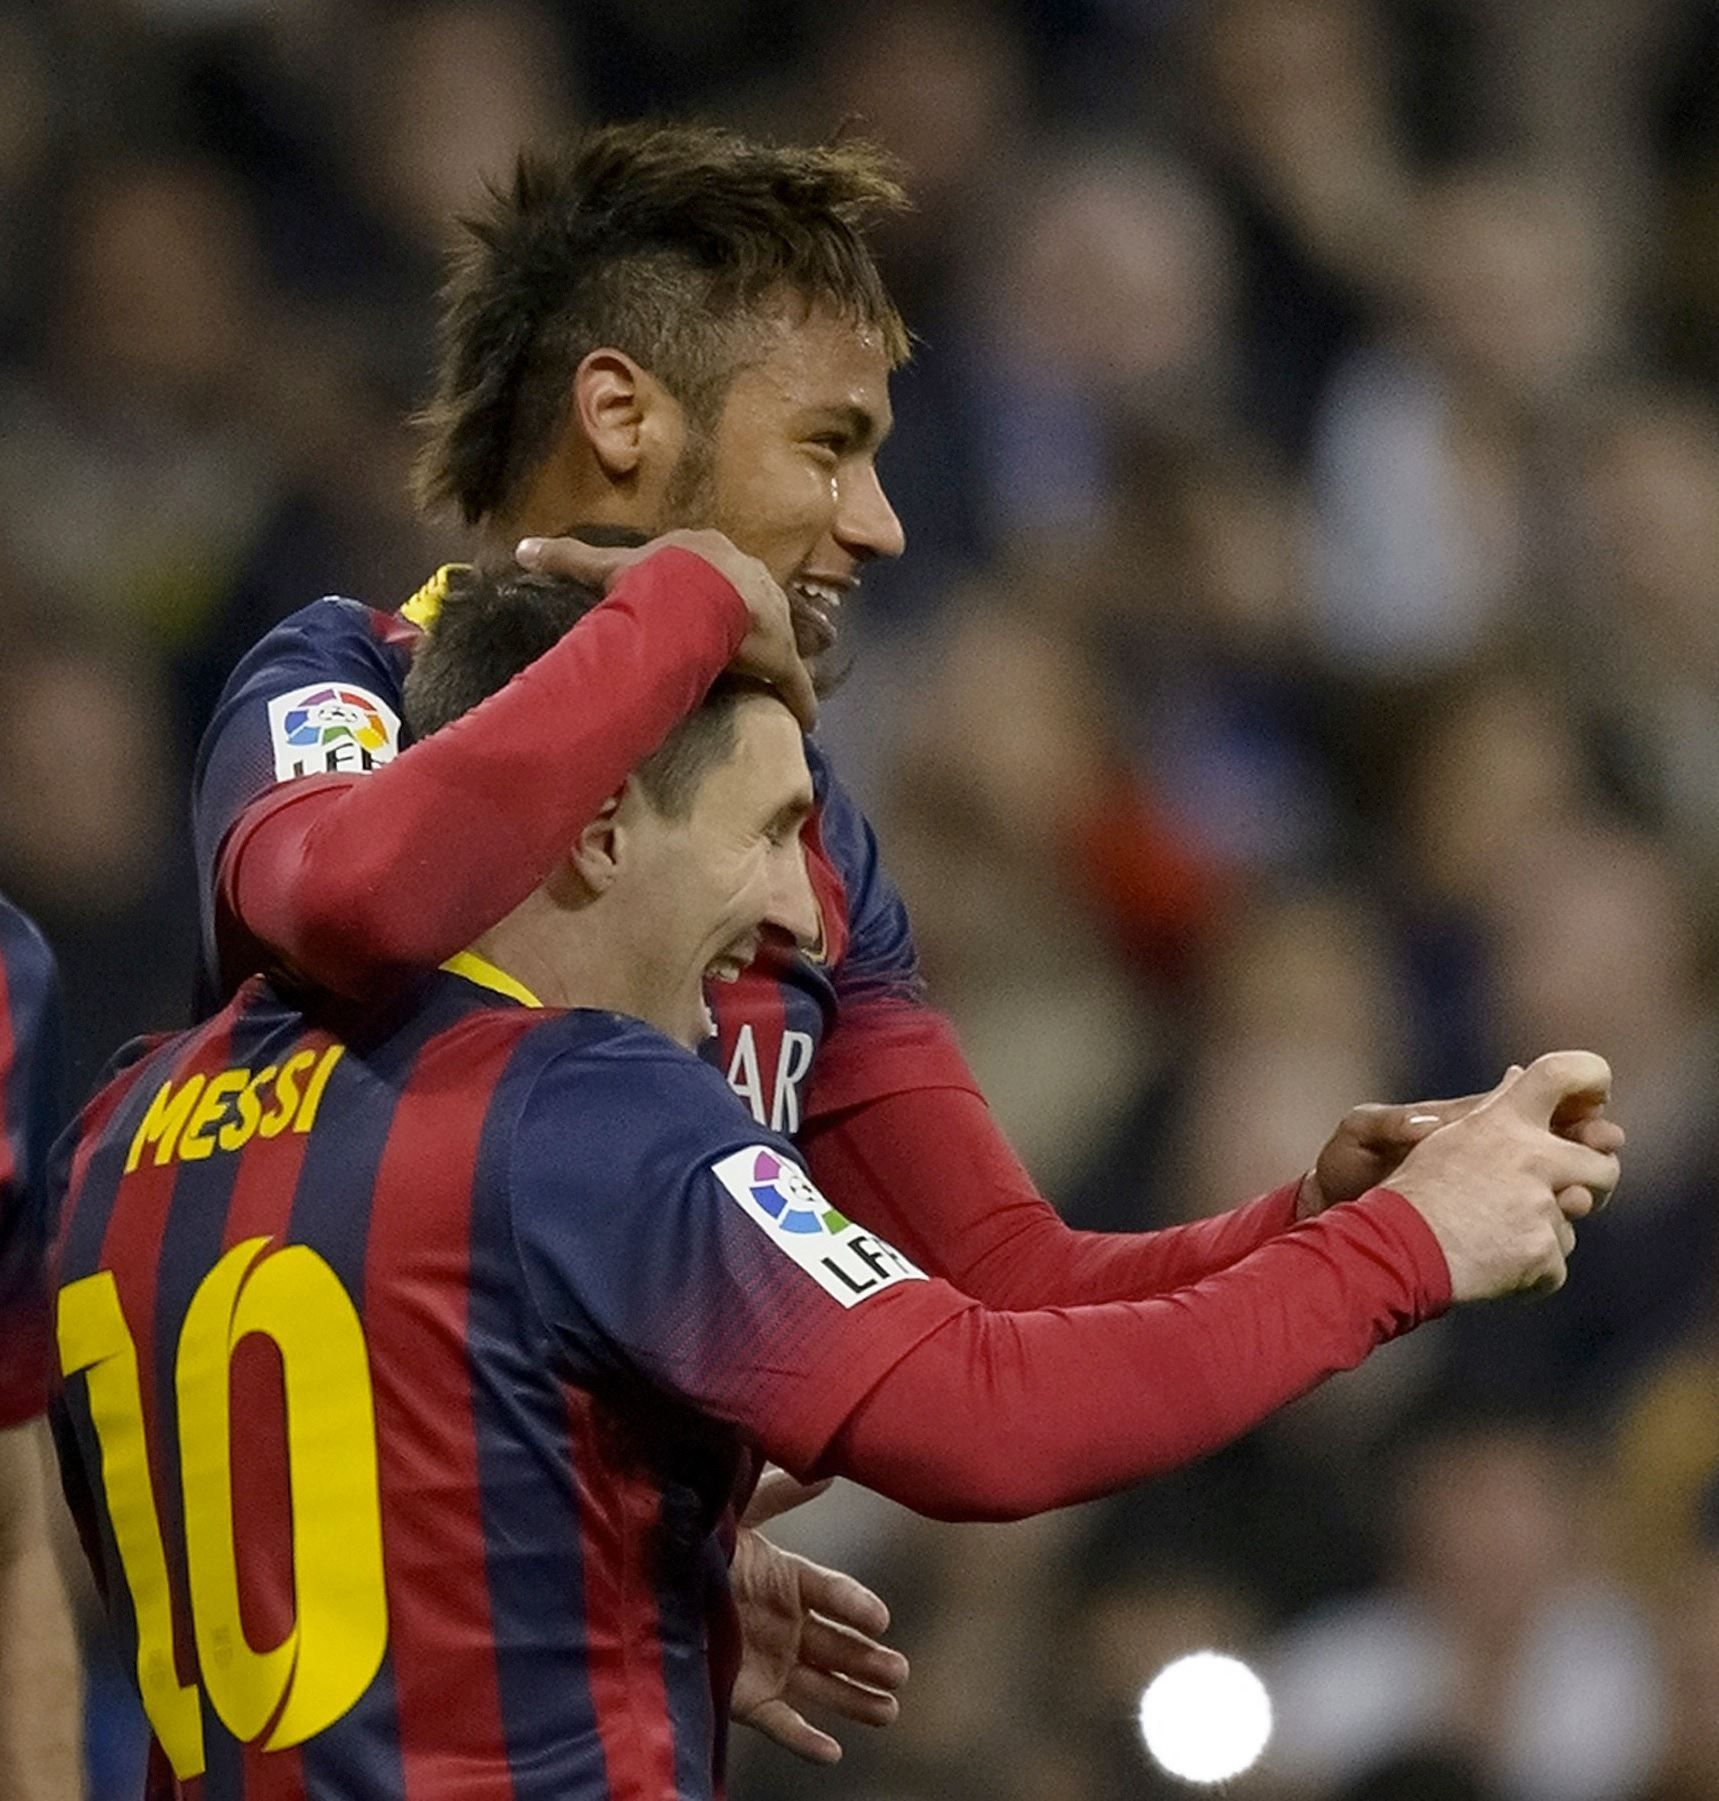 Messi and James. Neymar, Messi, Messi fans